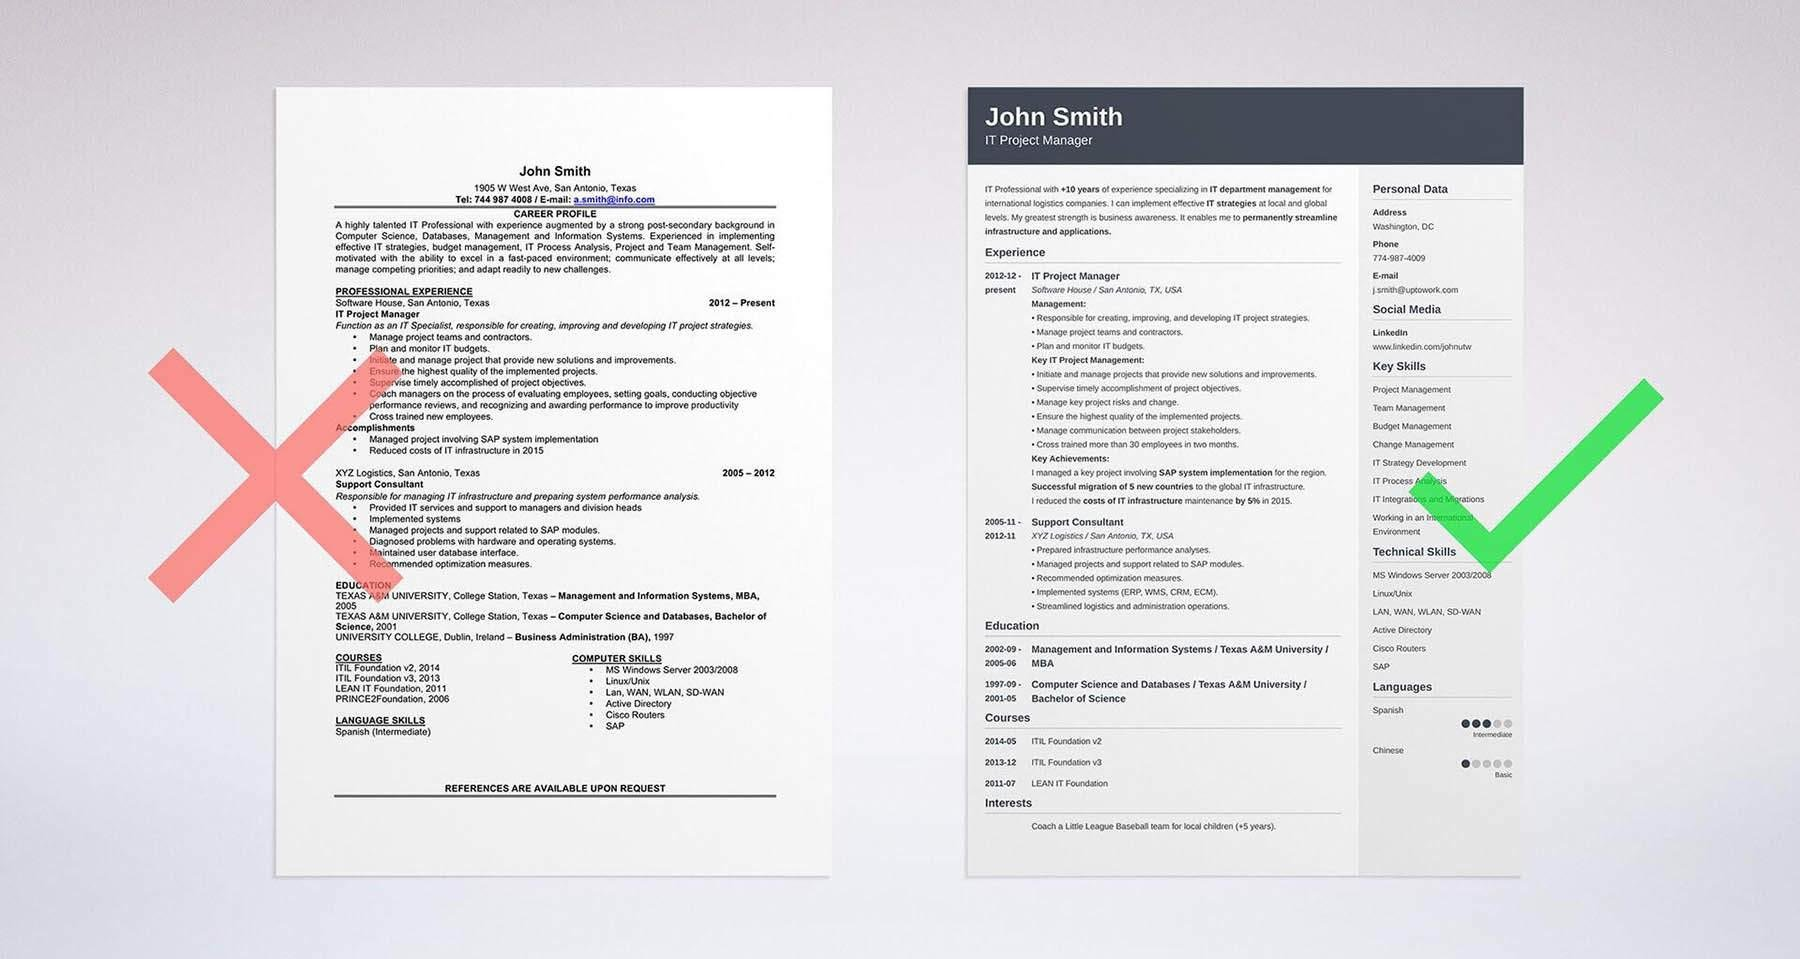 Good Highlight Your Resume Objective With Our Templates   Create Your Resume In  5 Minutes Here.